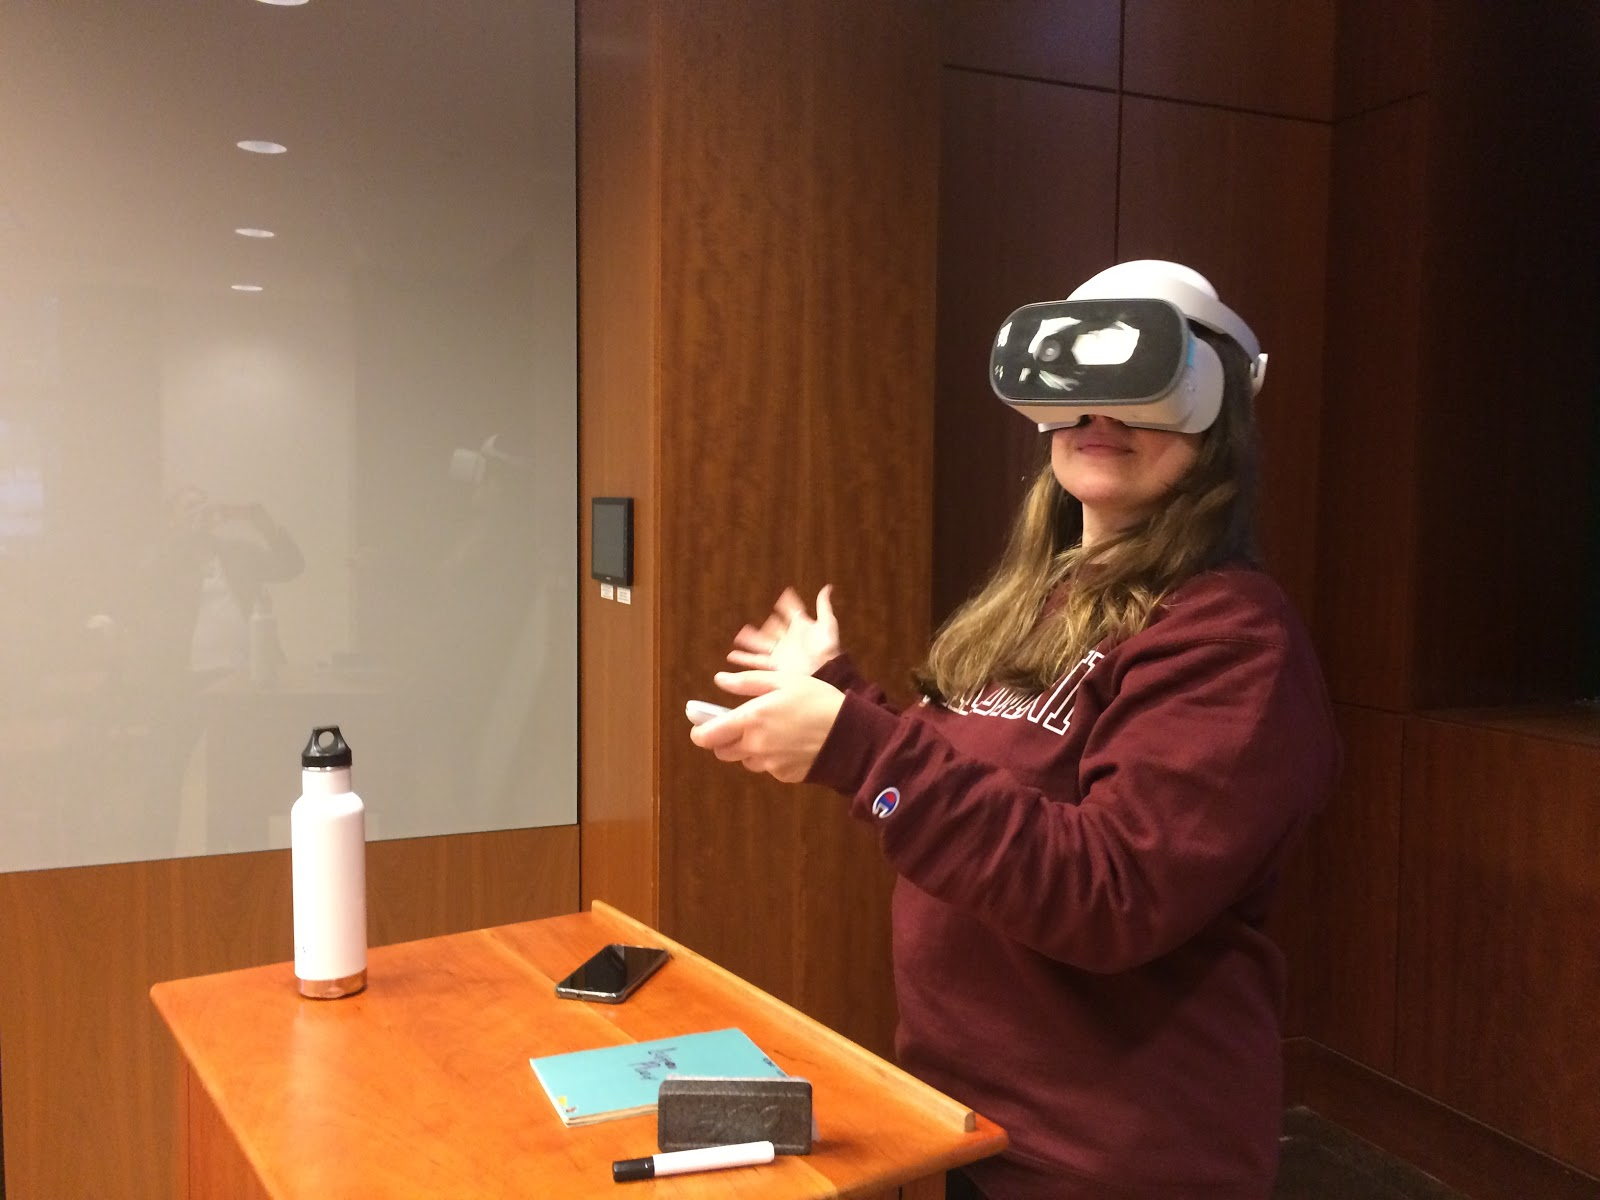 a student uses VR goggles